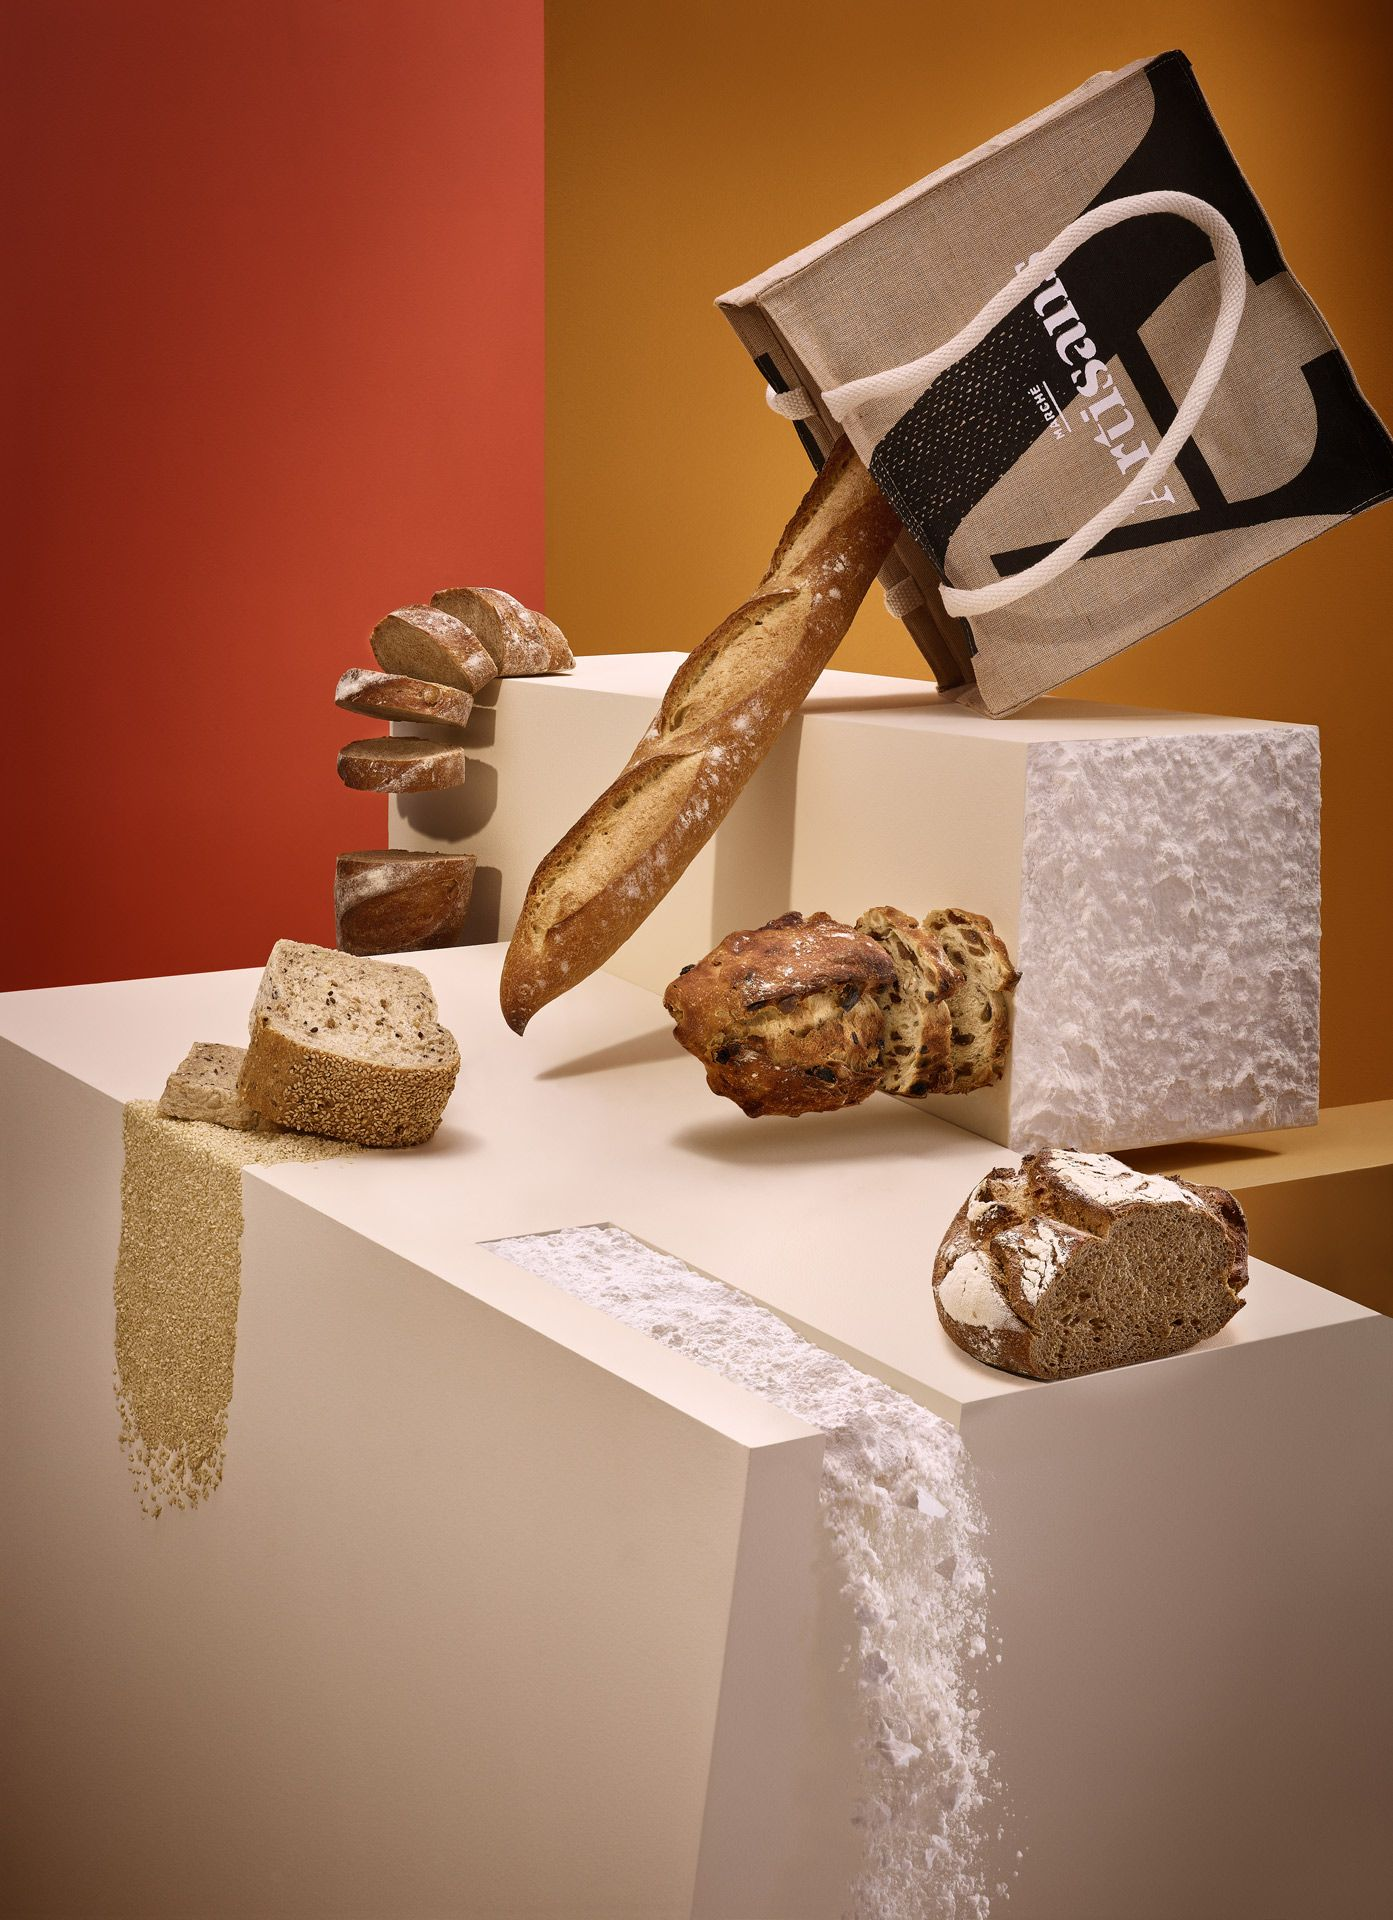 scenery showcasing different types and textures of breads flour baguettes seeds whole grain in orange ambiance by Mathieu Lévesque for Marché Artisans